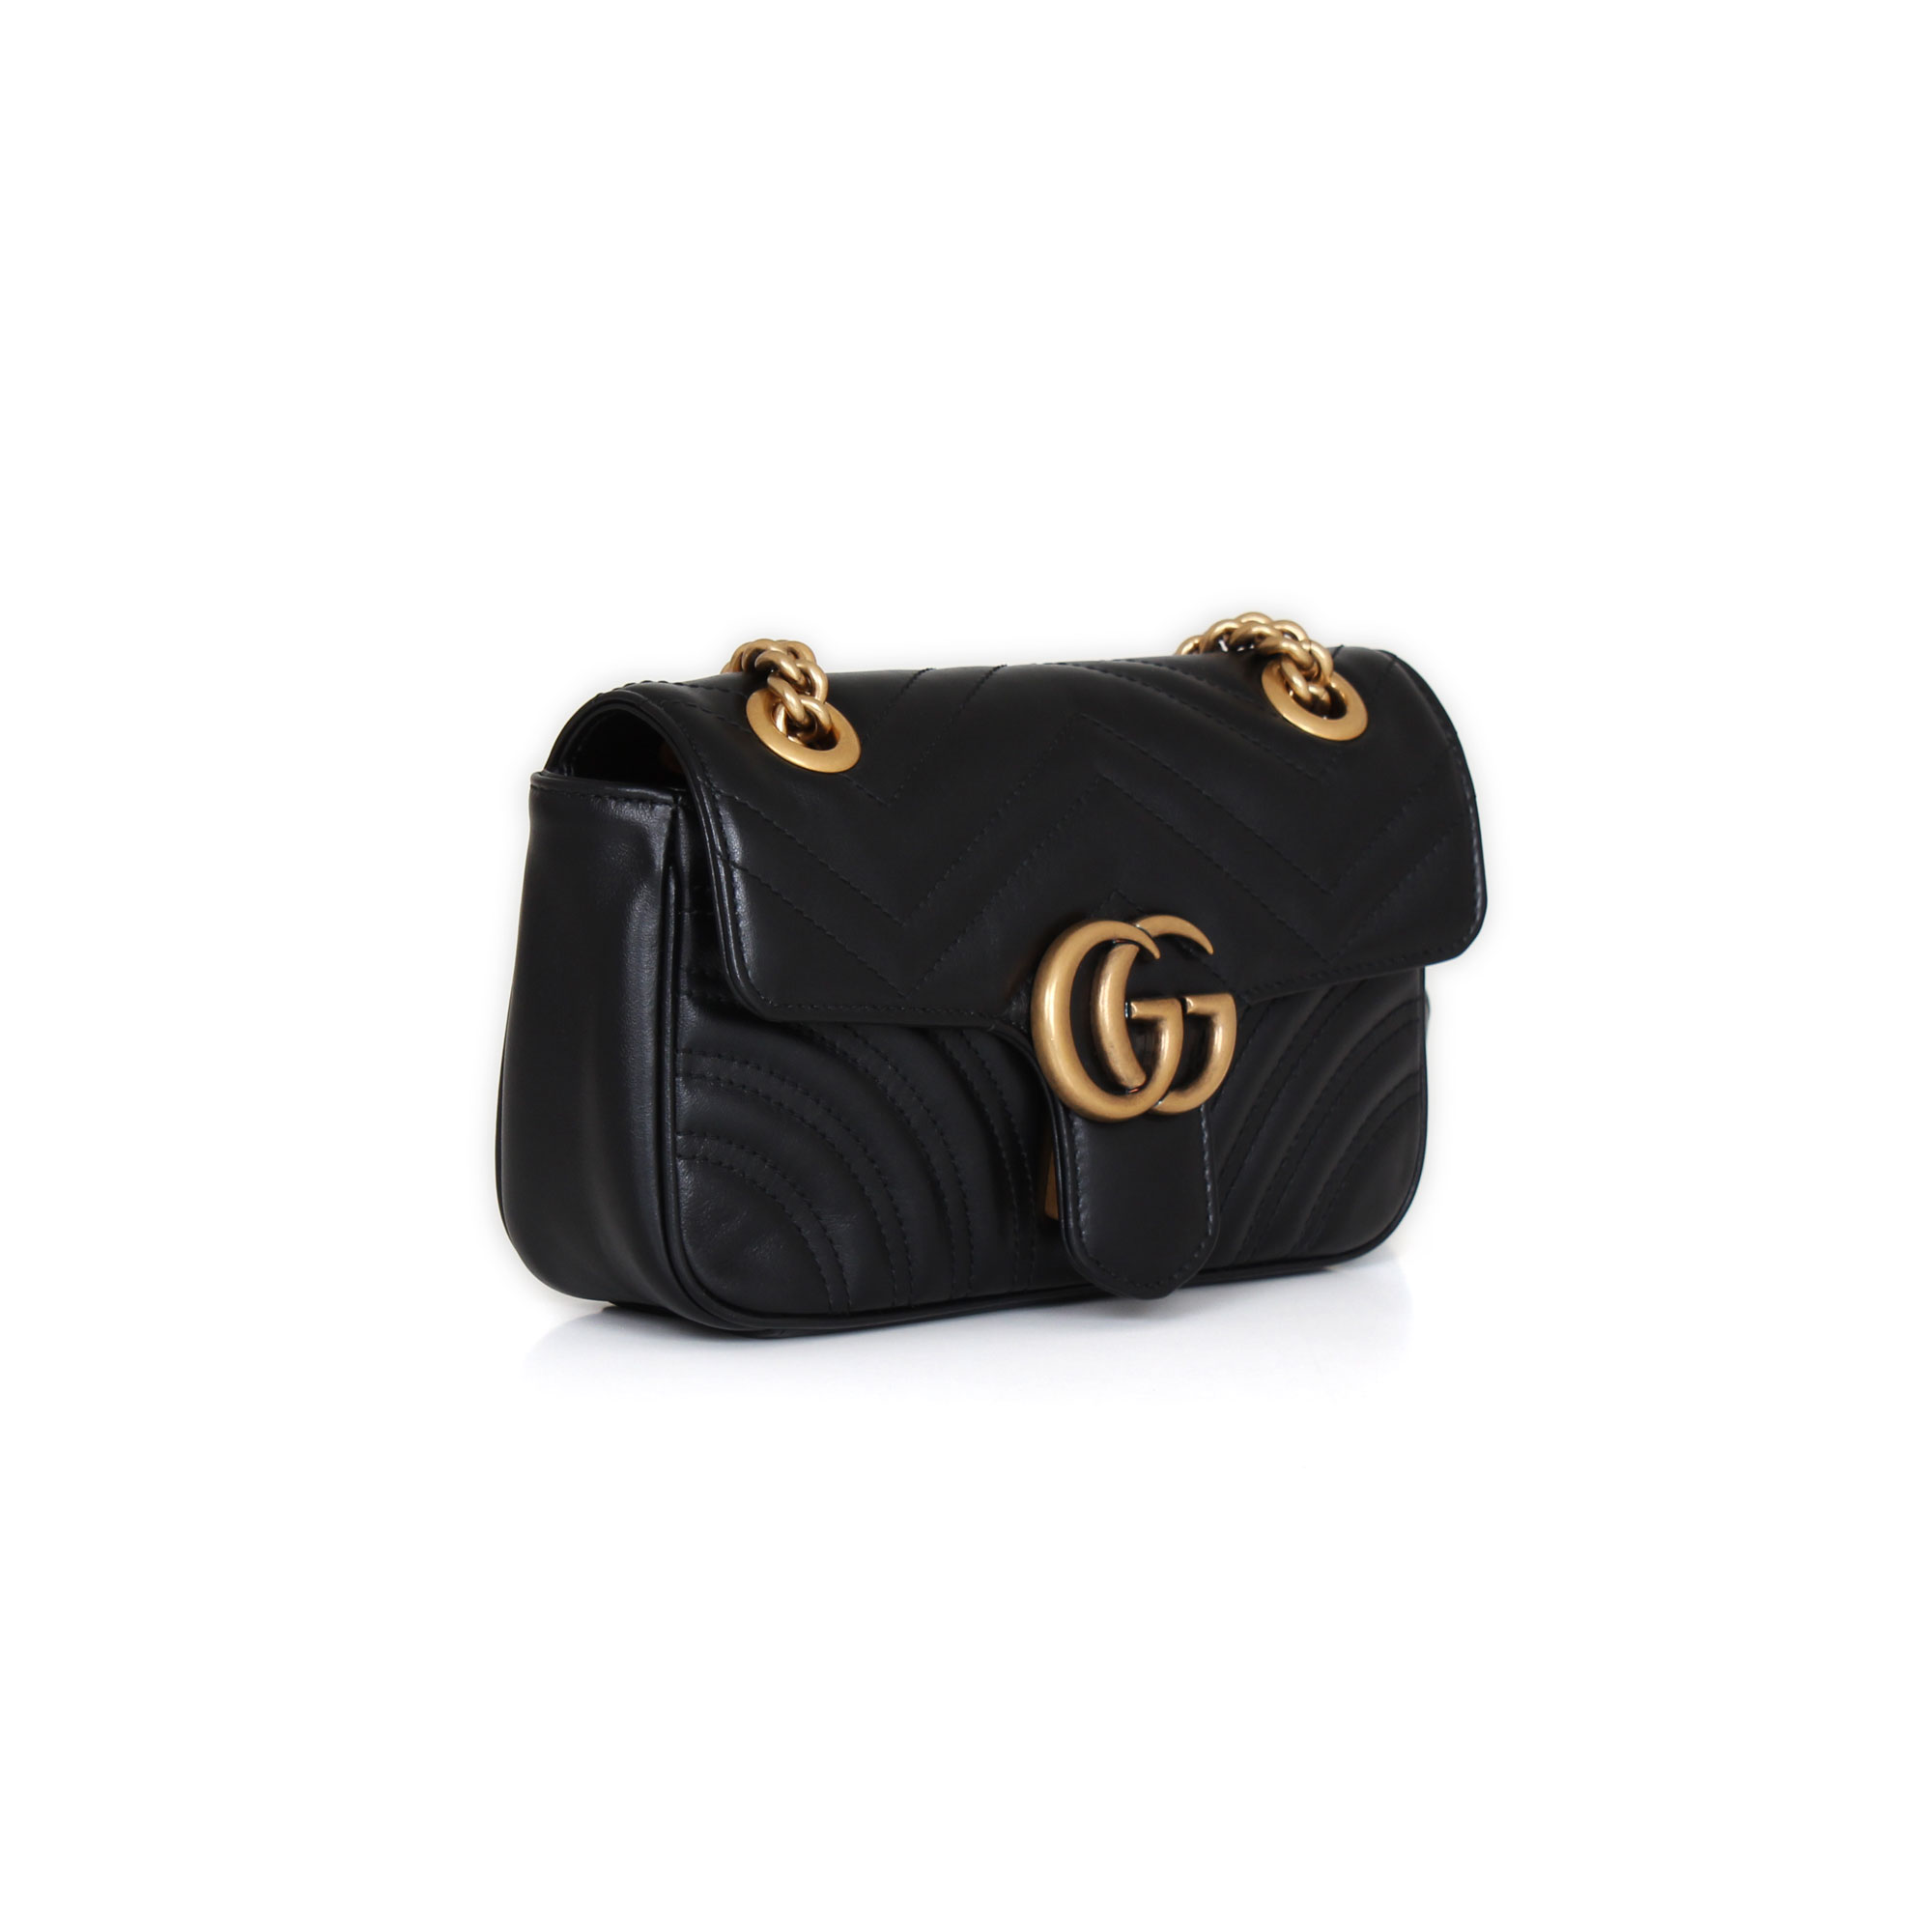 bebcb7330 Gucci GG Mini Marmont Black cowhide leather | CBL Bags